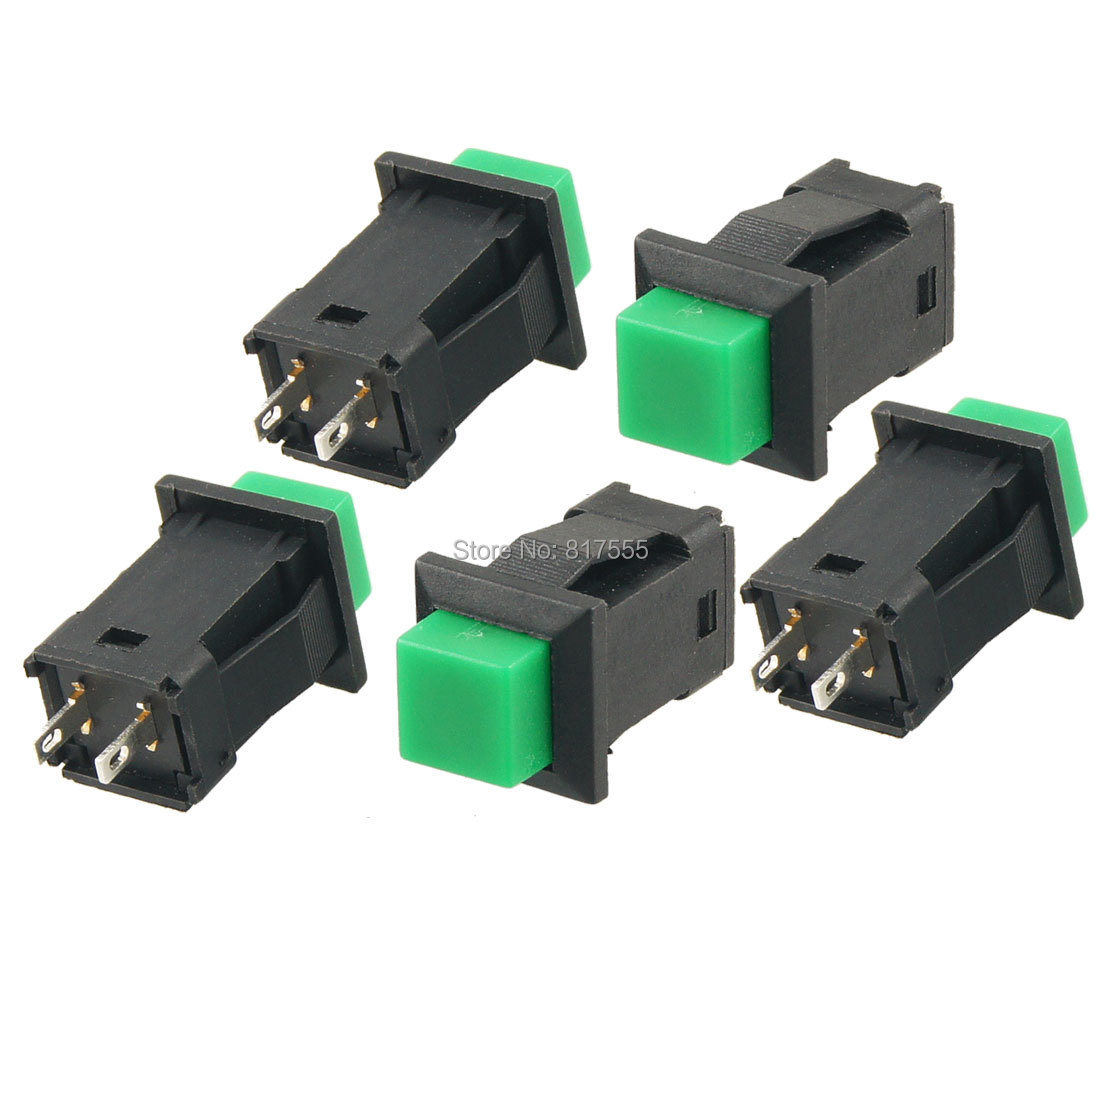 5 Pcs Lot 2 Pins Spst Momentary Push Button Switch No Ac 250v 1a Of Switches Should Only Require Two Terminals 125v 3a Accessories Electrical Equipment In From Lights